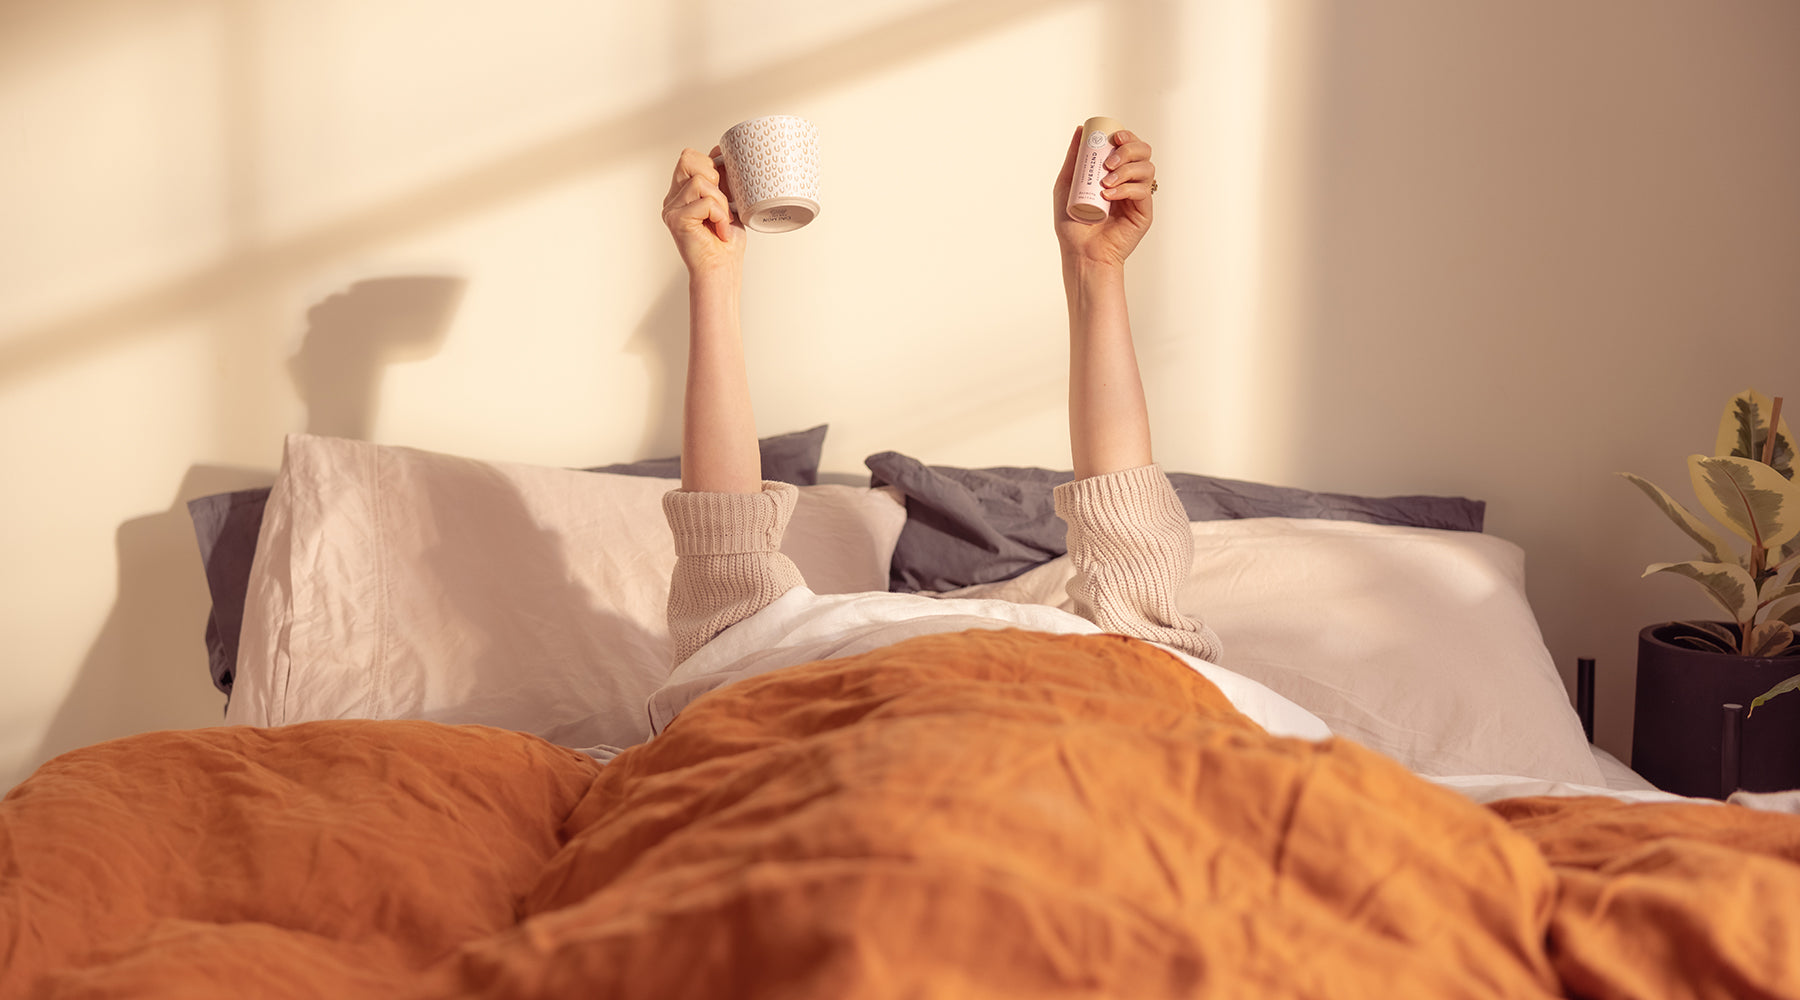 Mikki Williden shares just how important sleep is for our wellbeing.